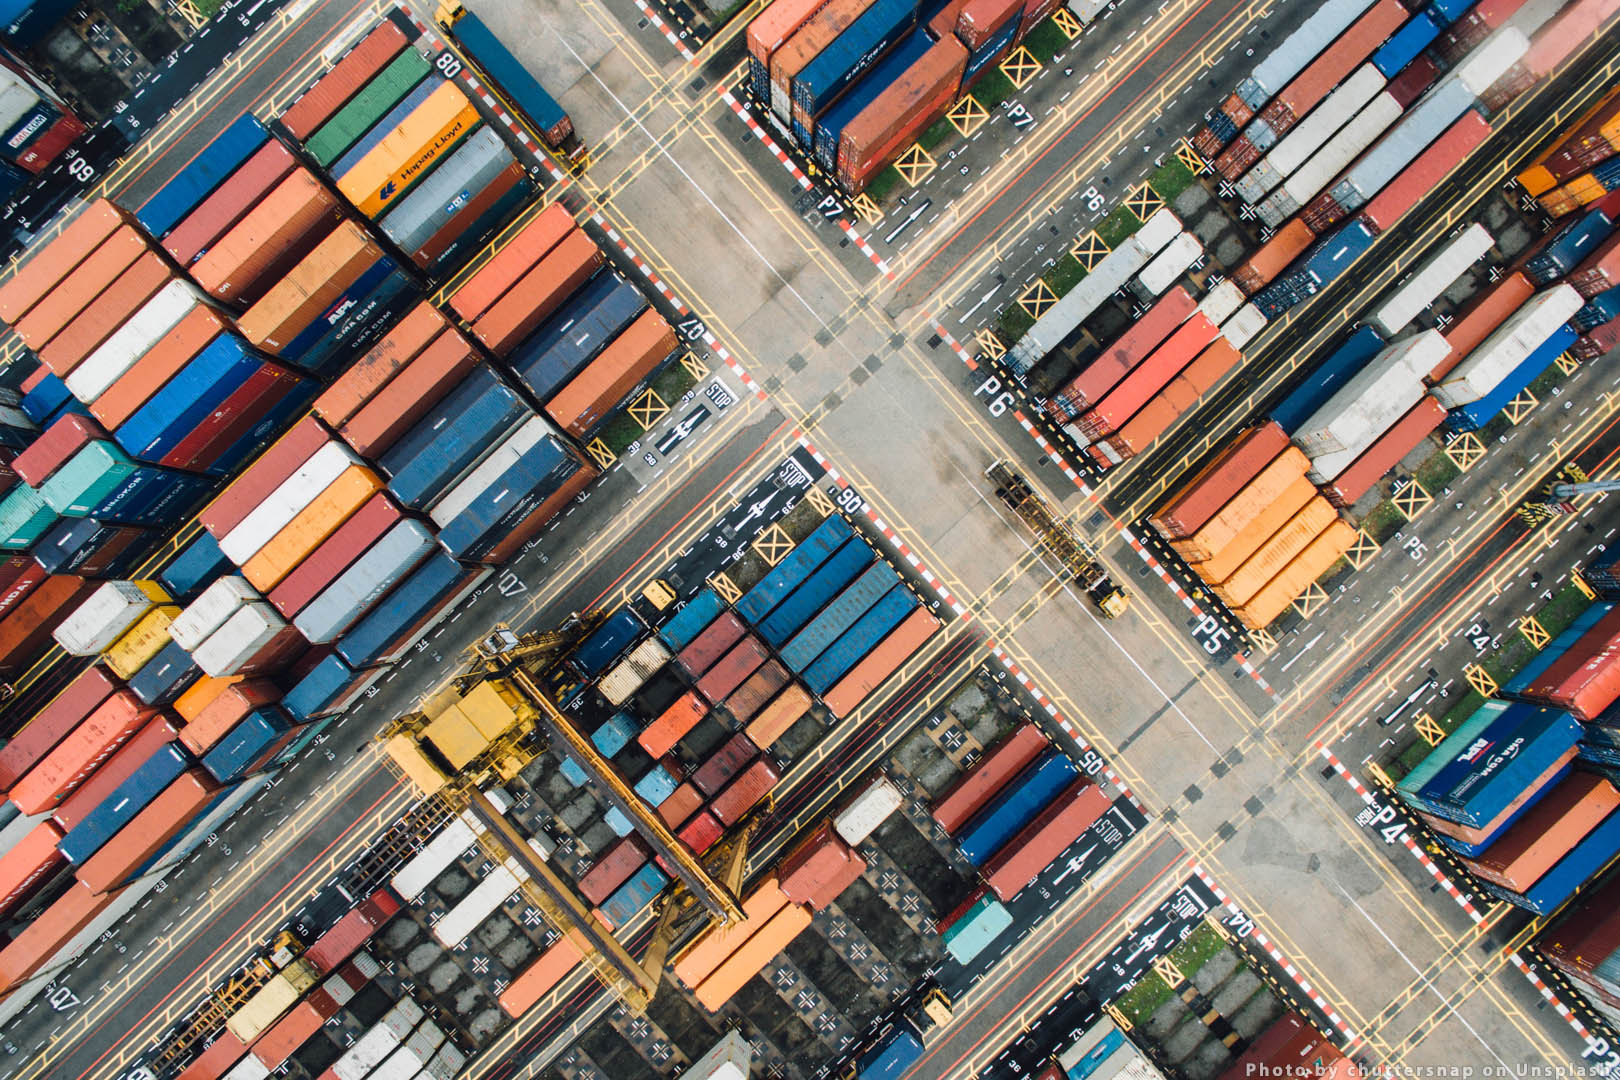 Free trade and investment protection deals will boost trade and open door to further trade with SE Asia ©CC0 by chuttersnap on Unsplash